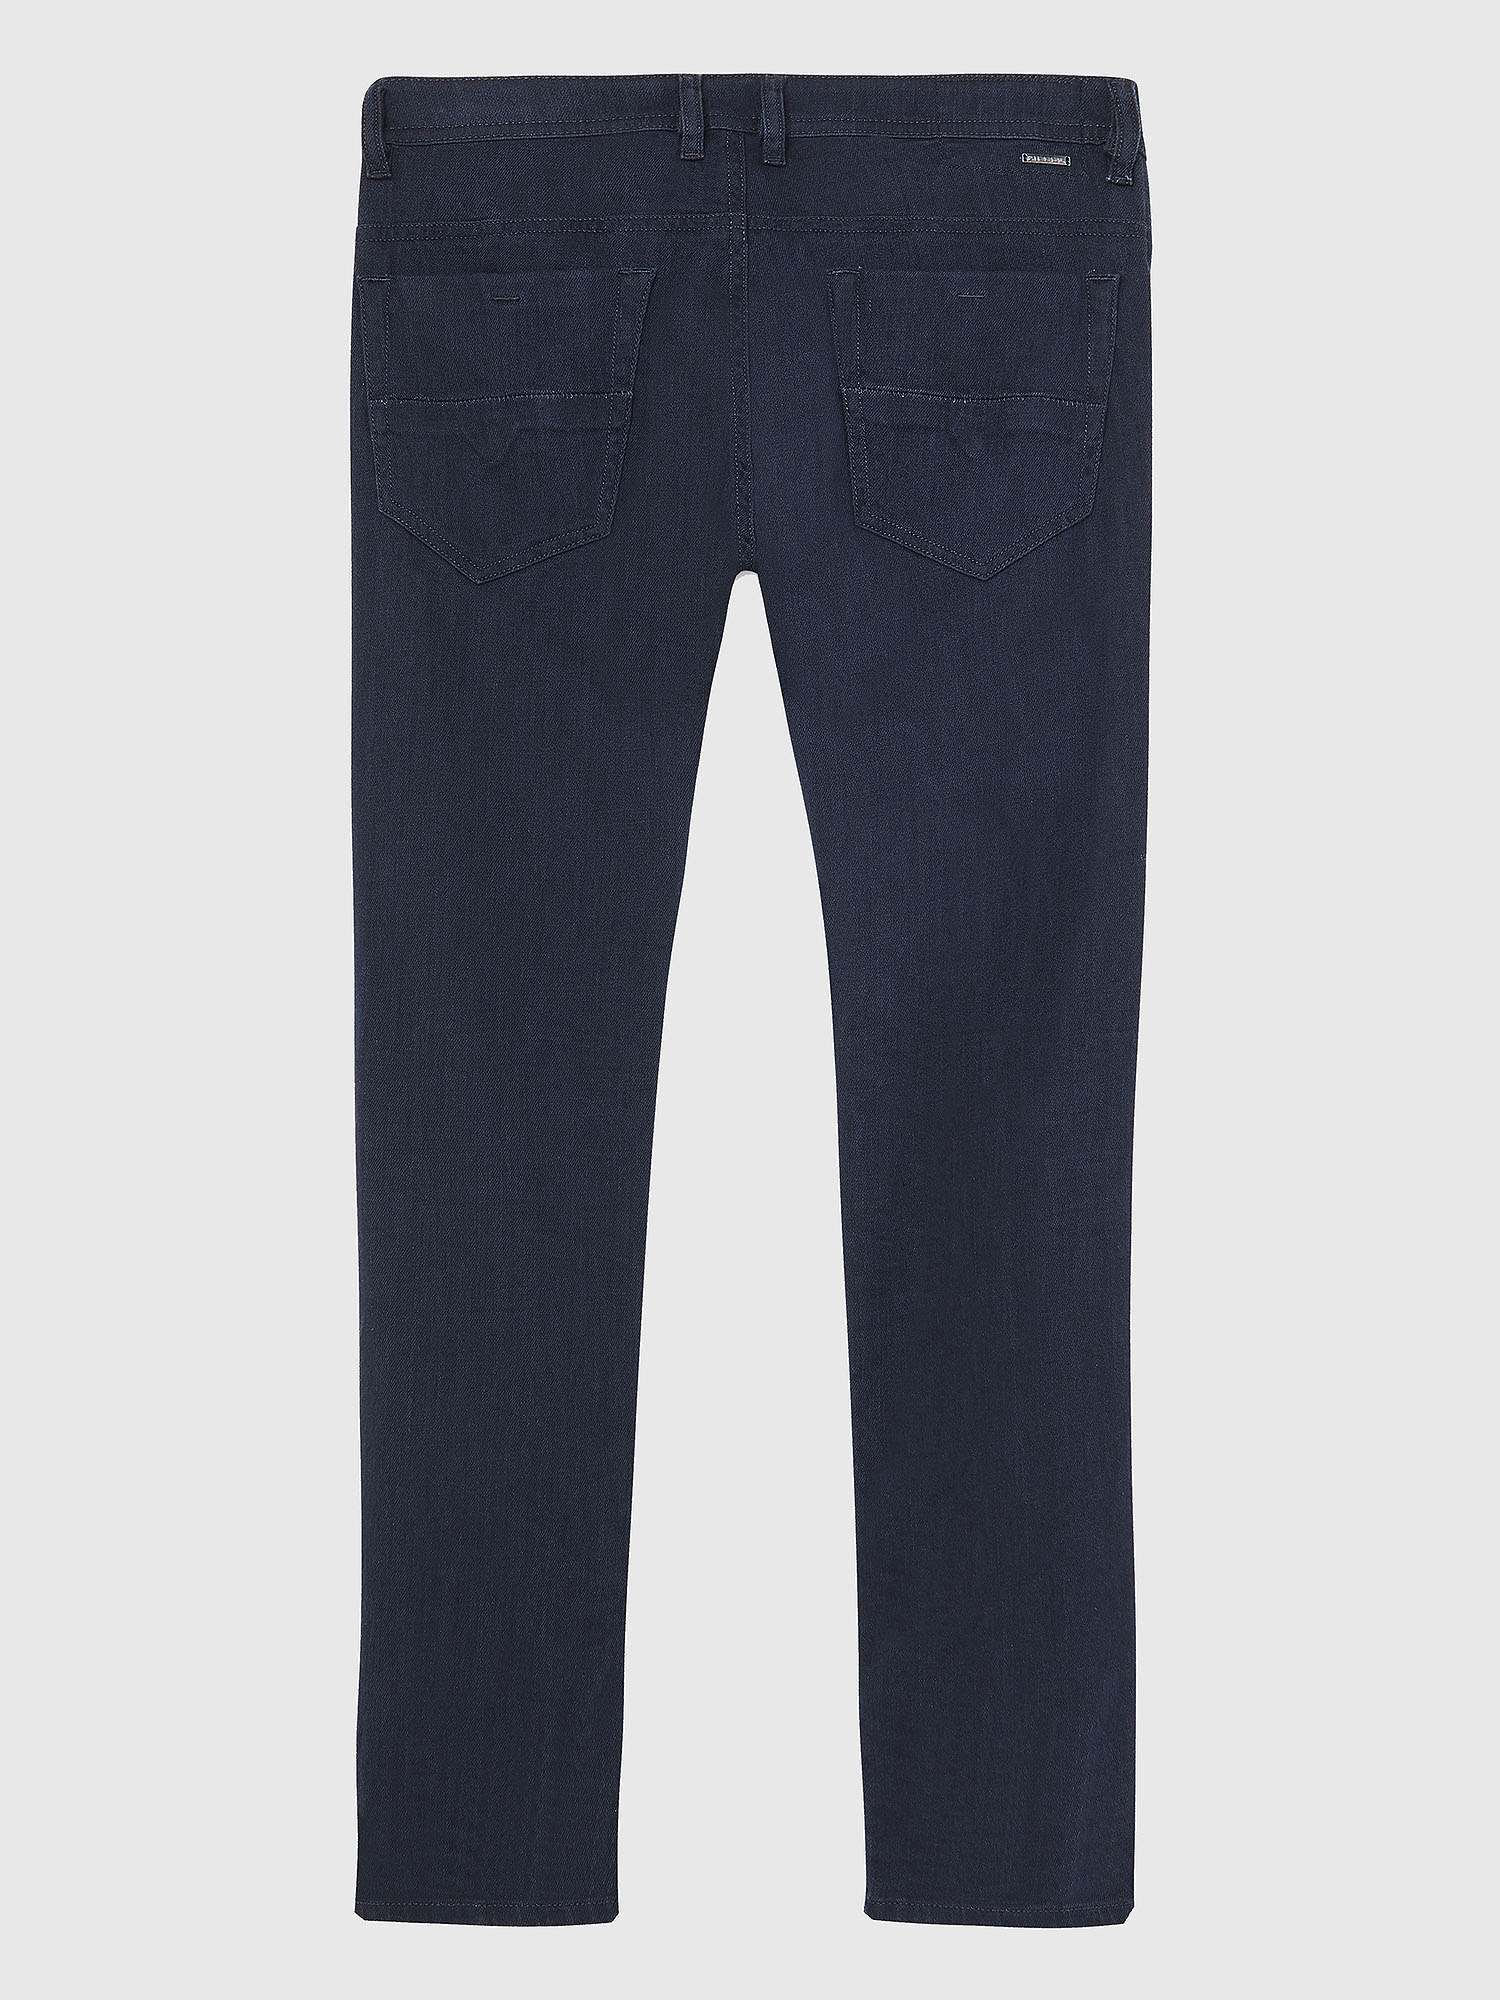 Diesel - Thommer 085AQ,  - Jeans - Image 2